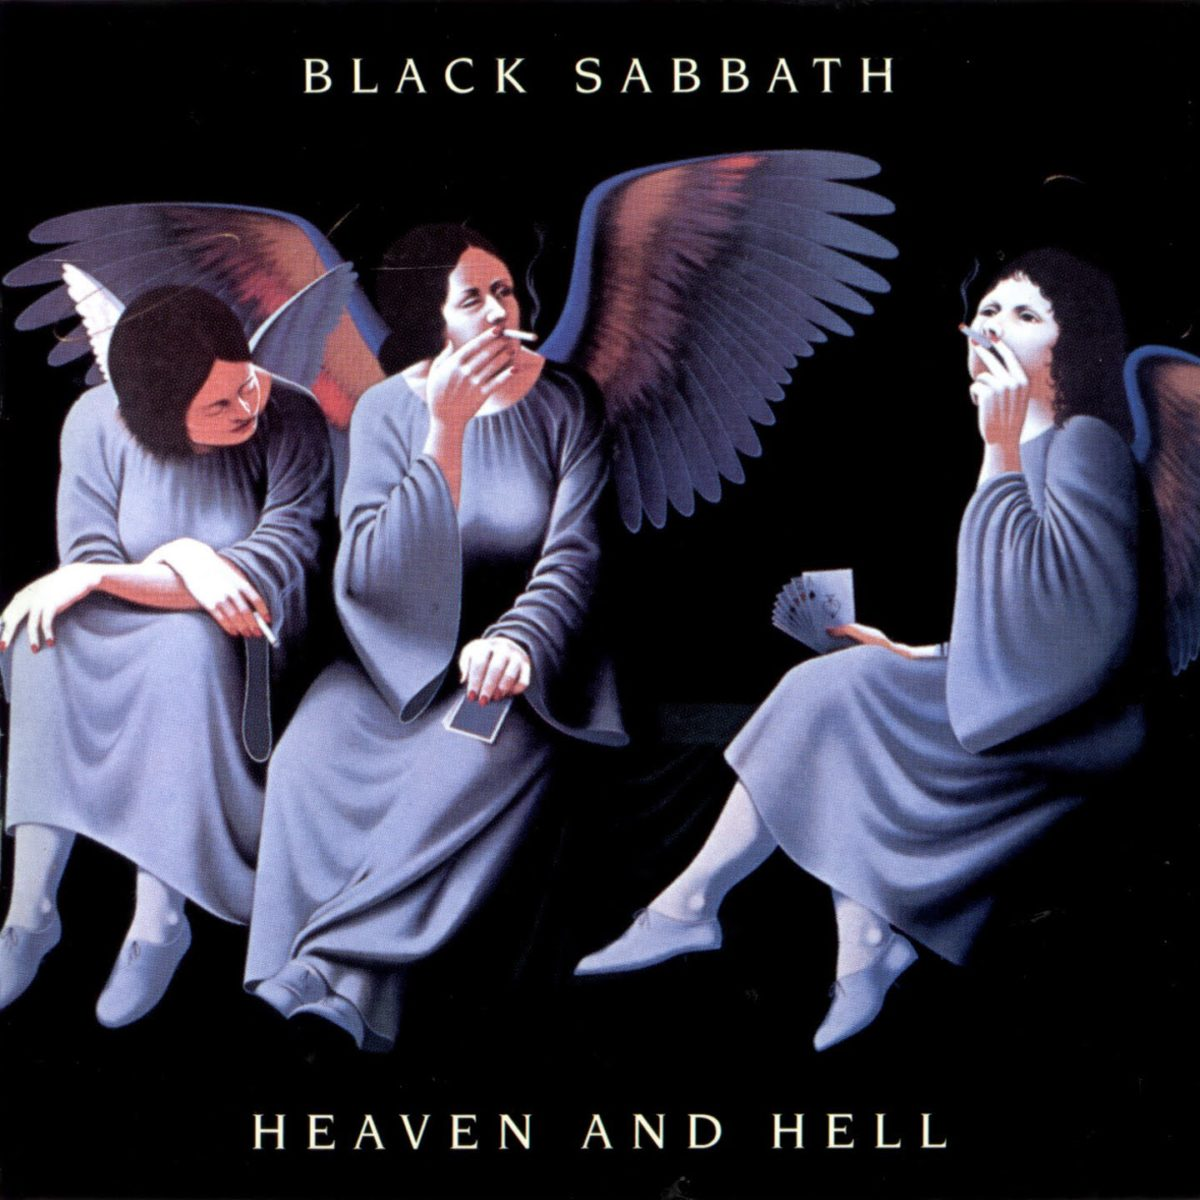 BlackSabbath_HeavenAndHell